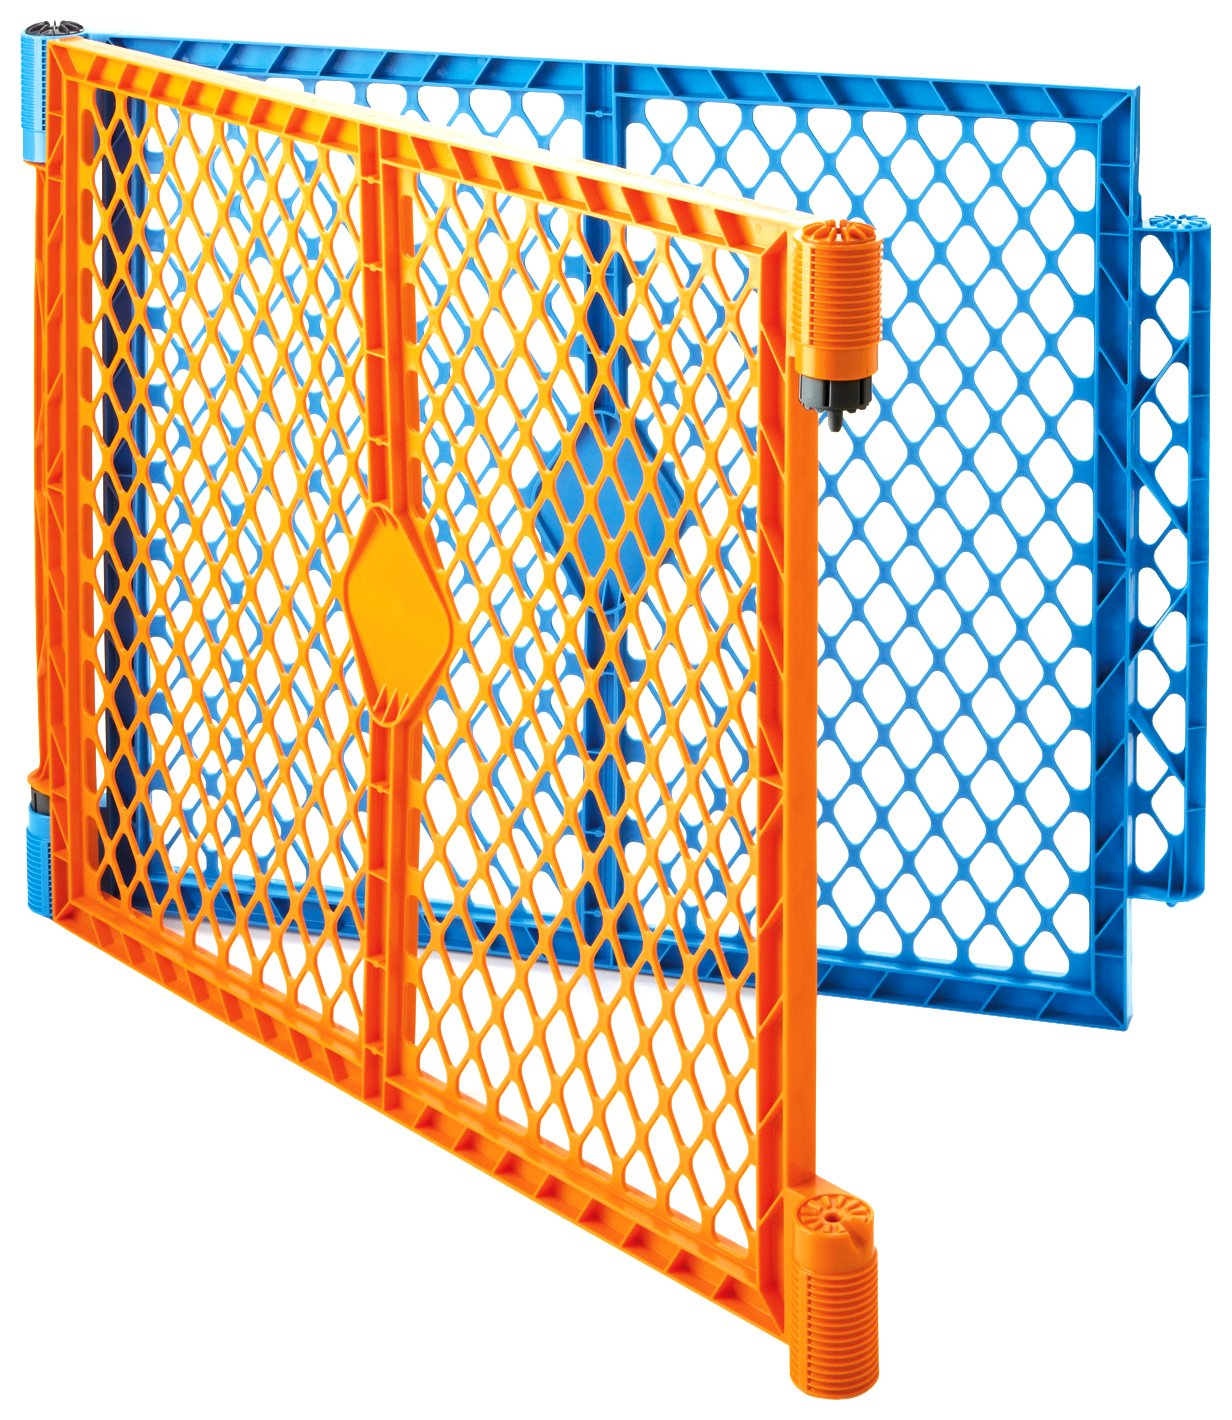 North State Superyard Colorplay 2 Panel Extension, Multi North States 8762